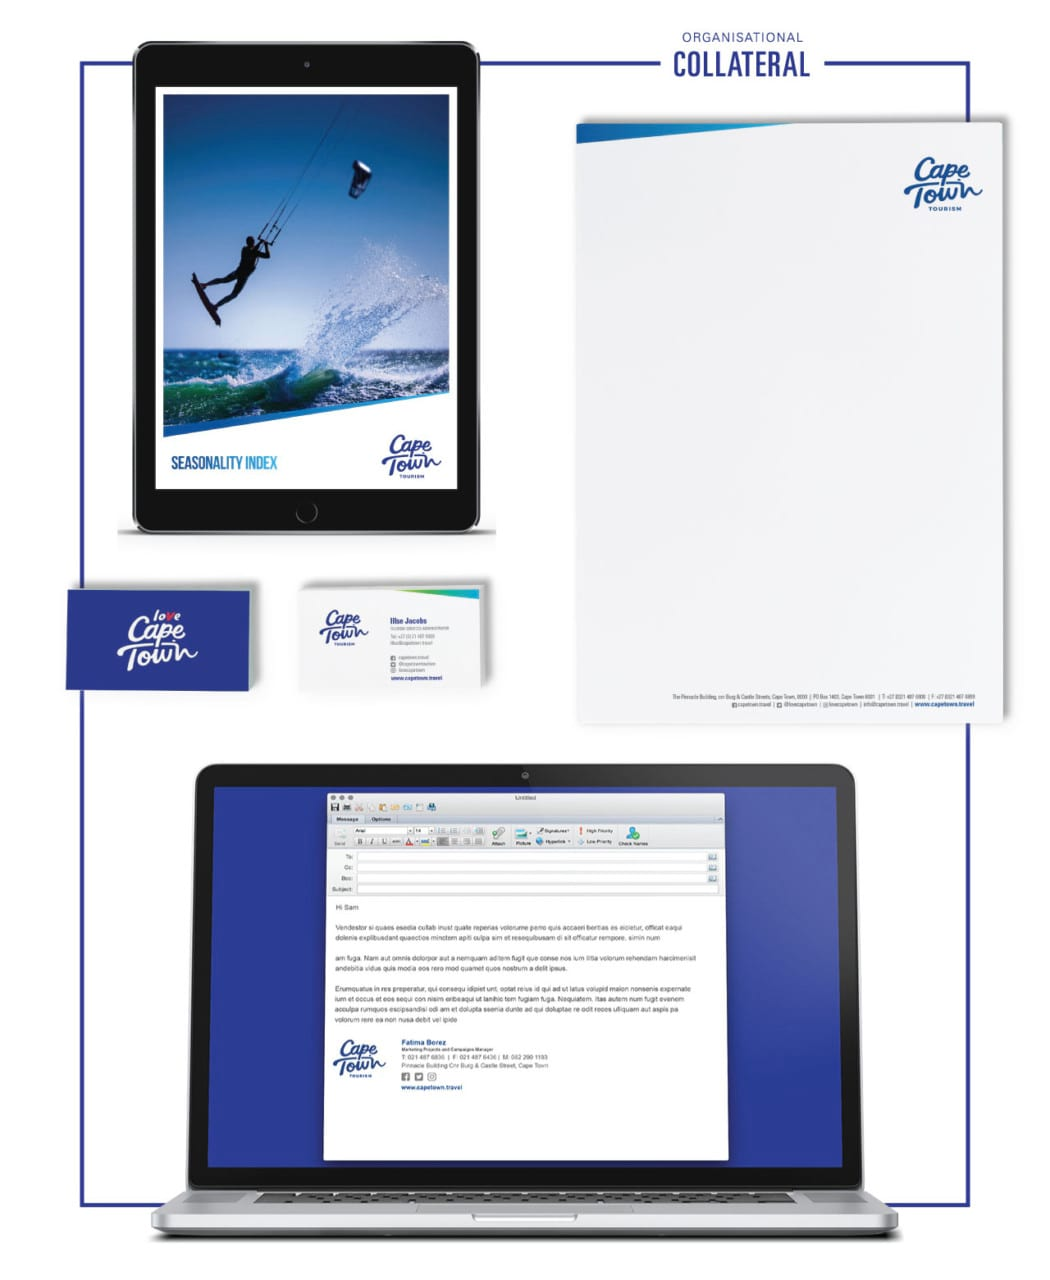 Cape Town Tourism brand Case study organisation collateral